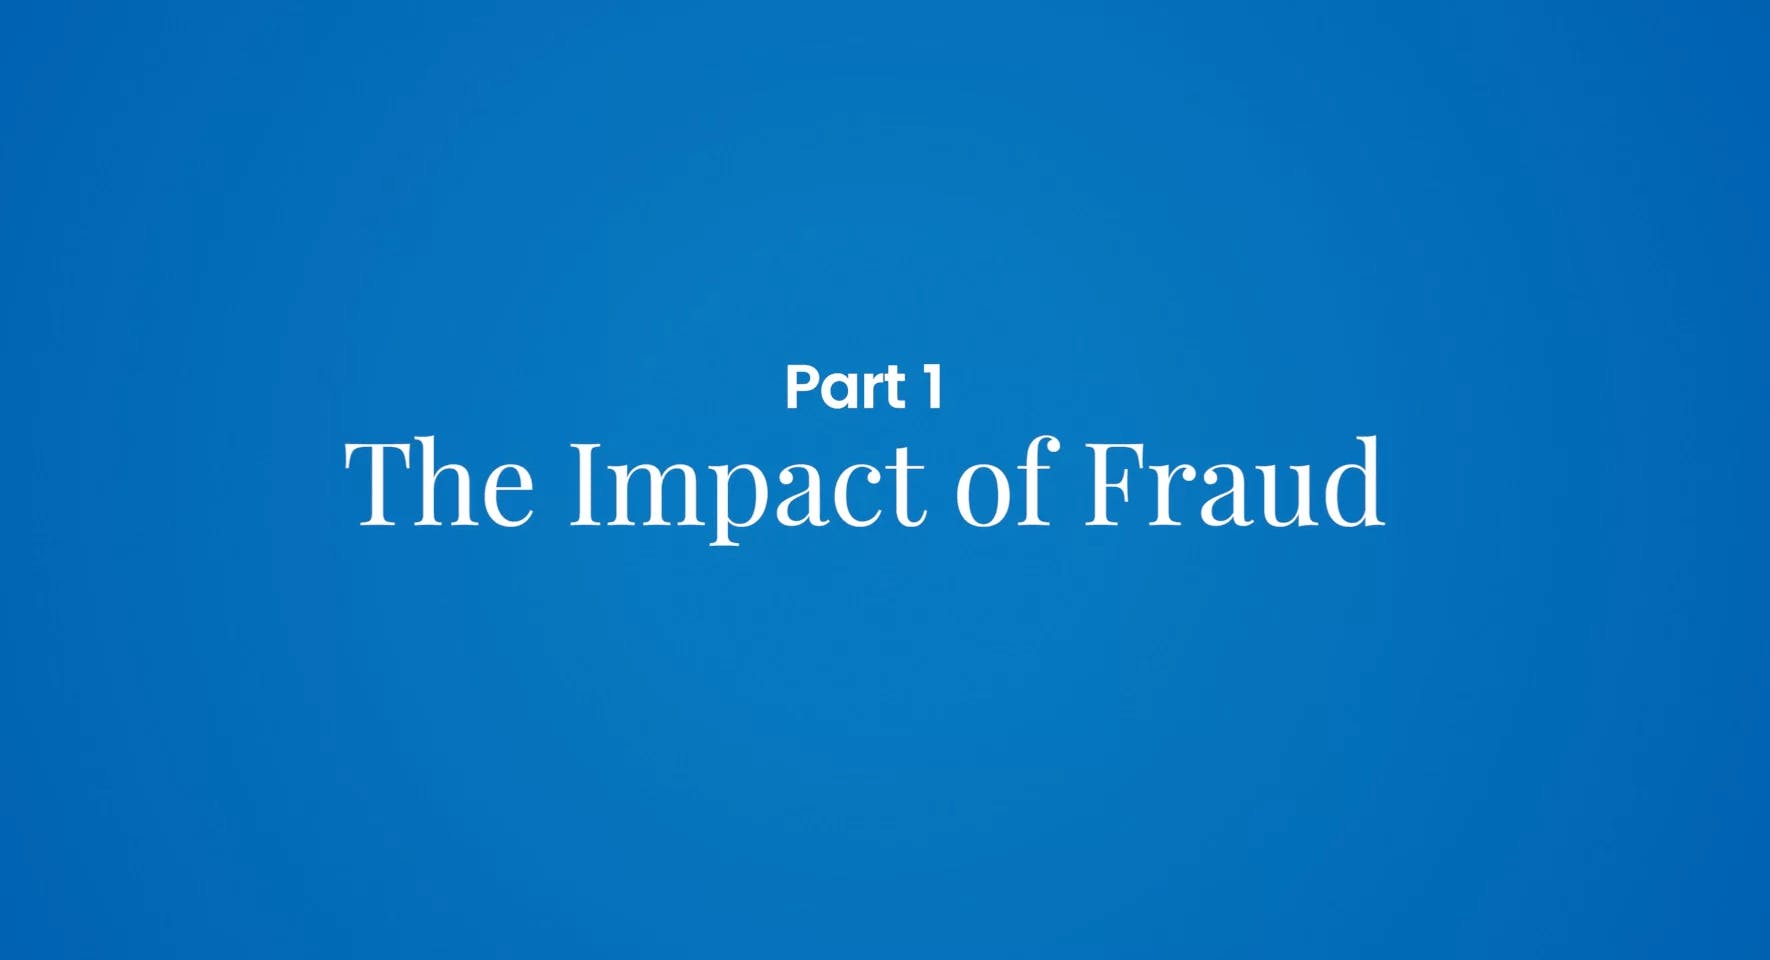 Impact of Fraud Pt 1 - Combating Fraud: A View from the Front Lines